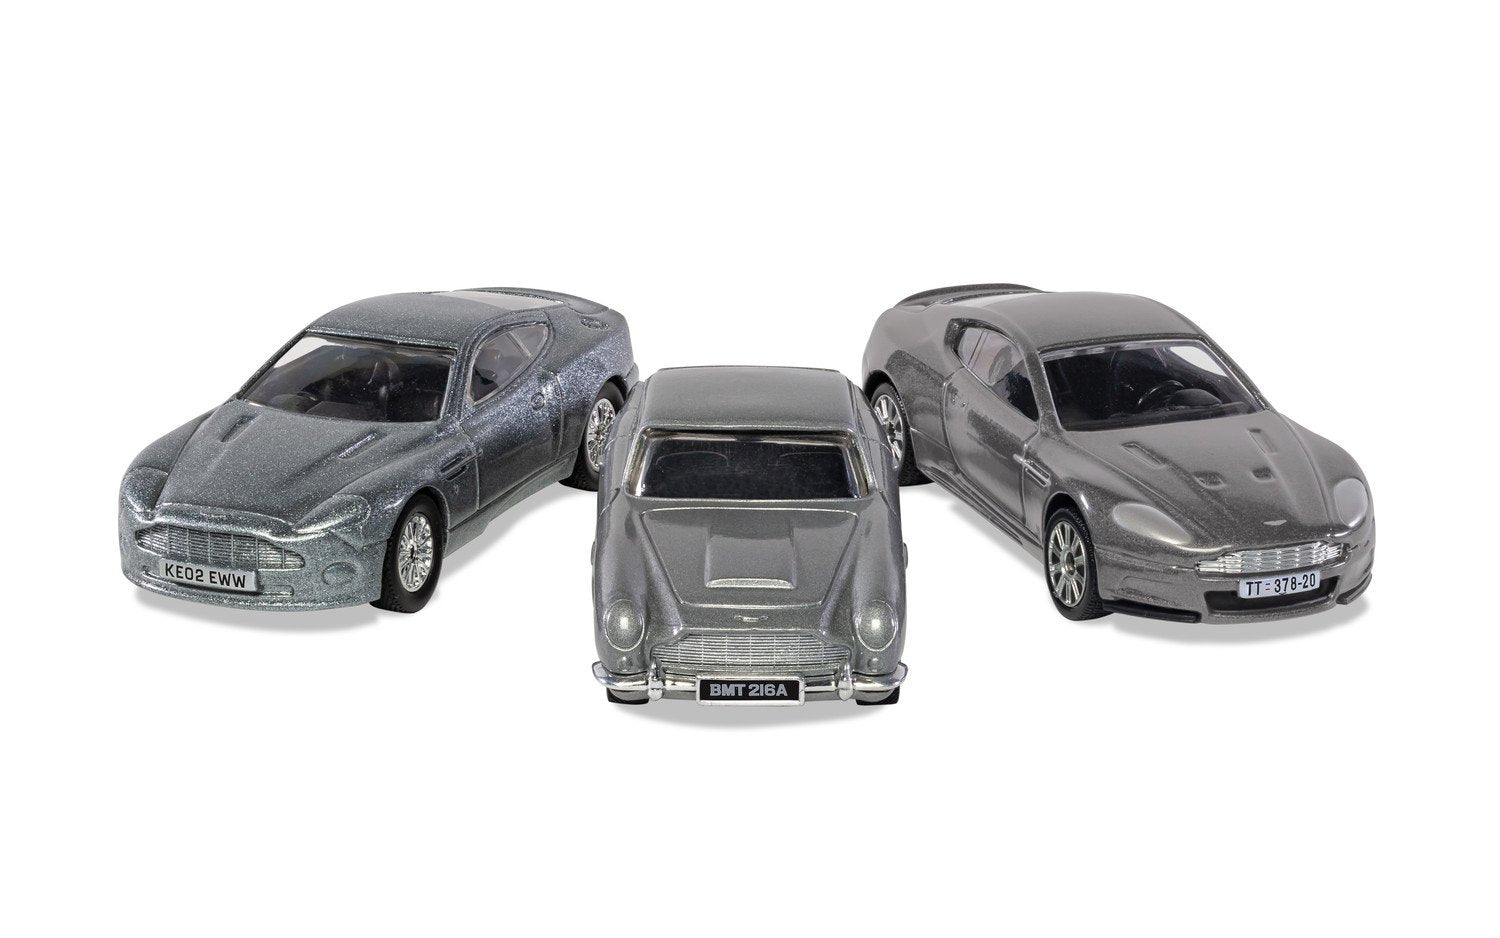 James Bond Aston Martin Model Car Trio - DB5, V12 Vanquish & DBS - By Corgi